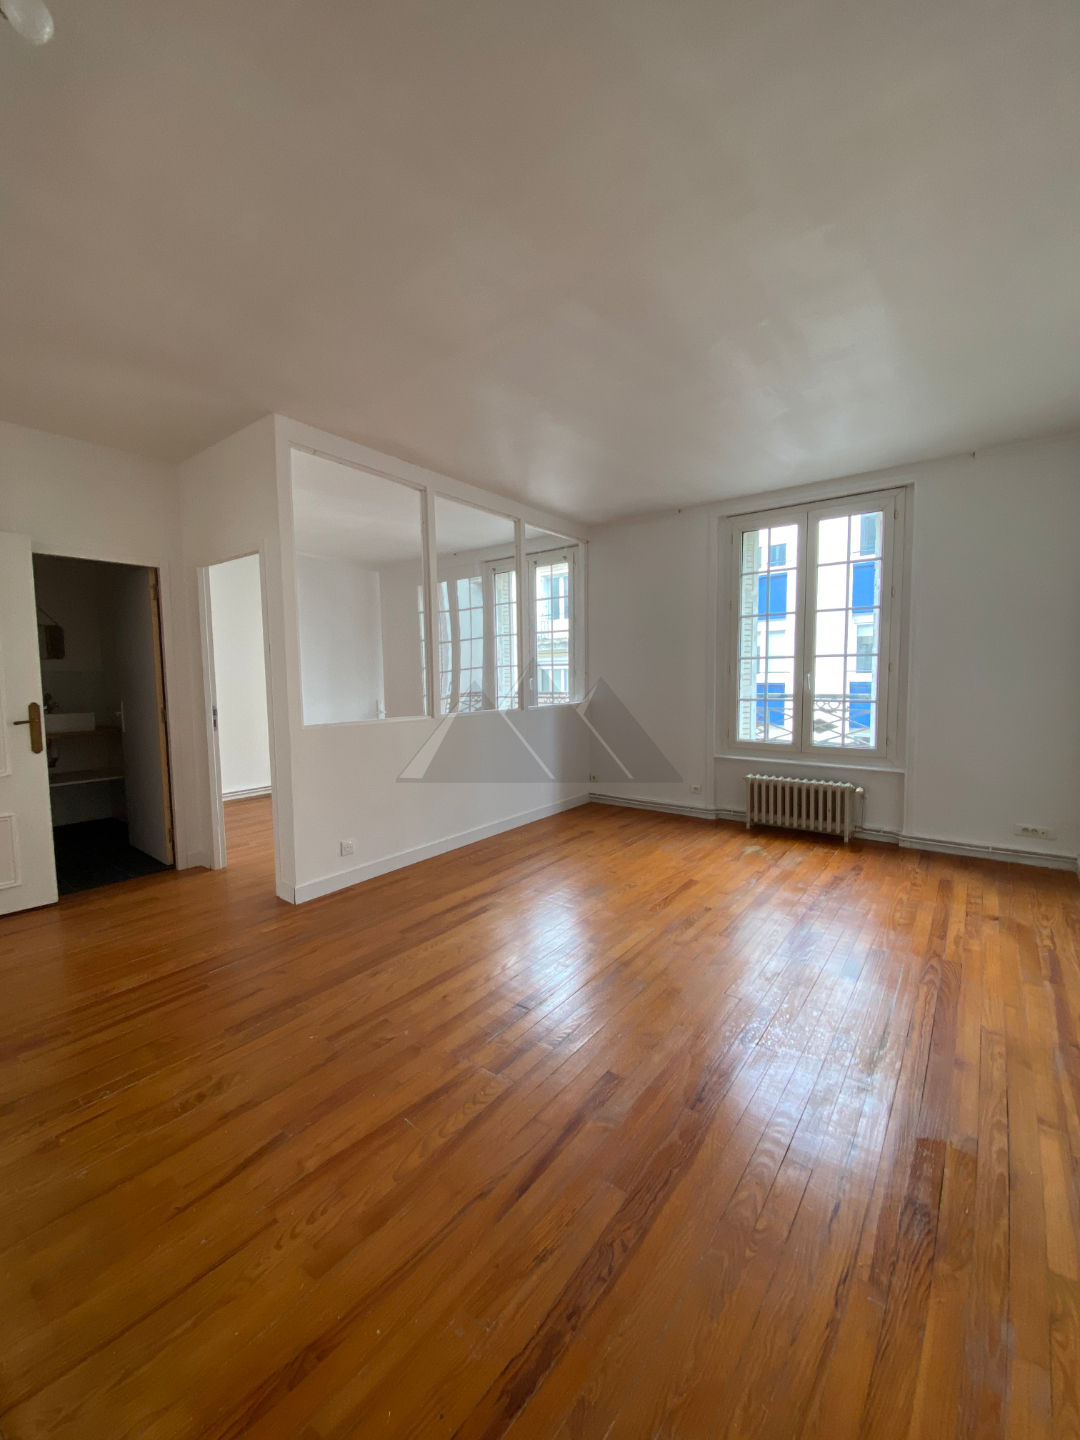 A LOUER QUARTIER SAINT LOUIS APPARTEMENT T4 DE 88m²